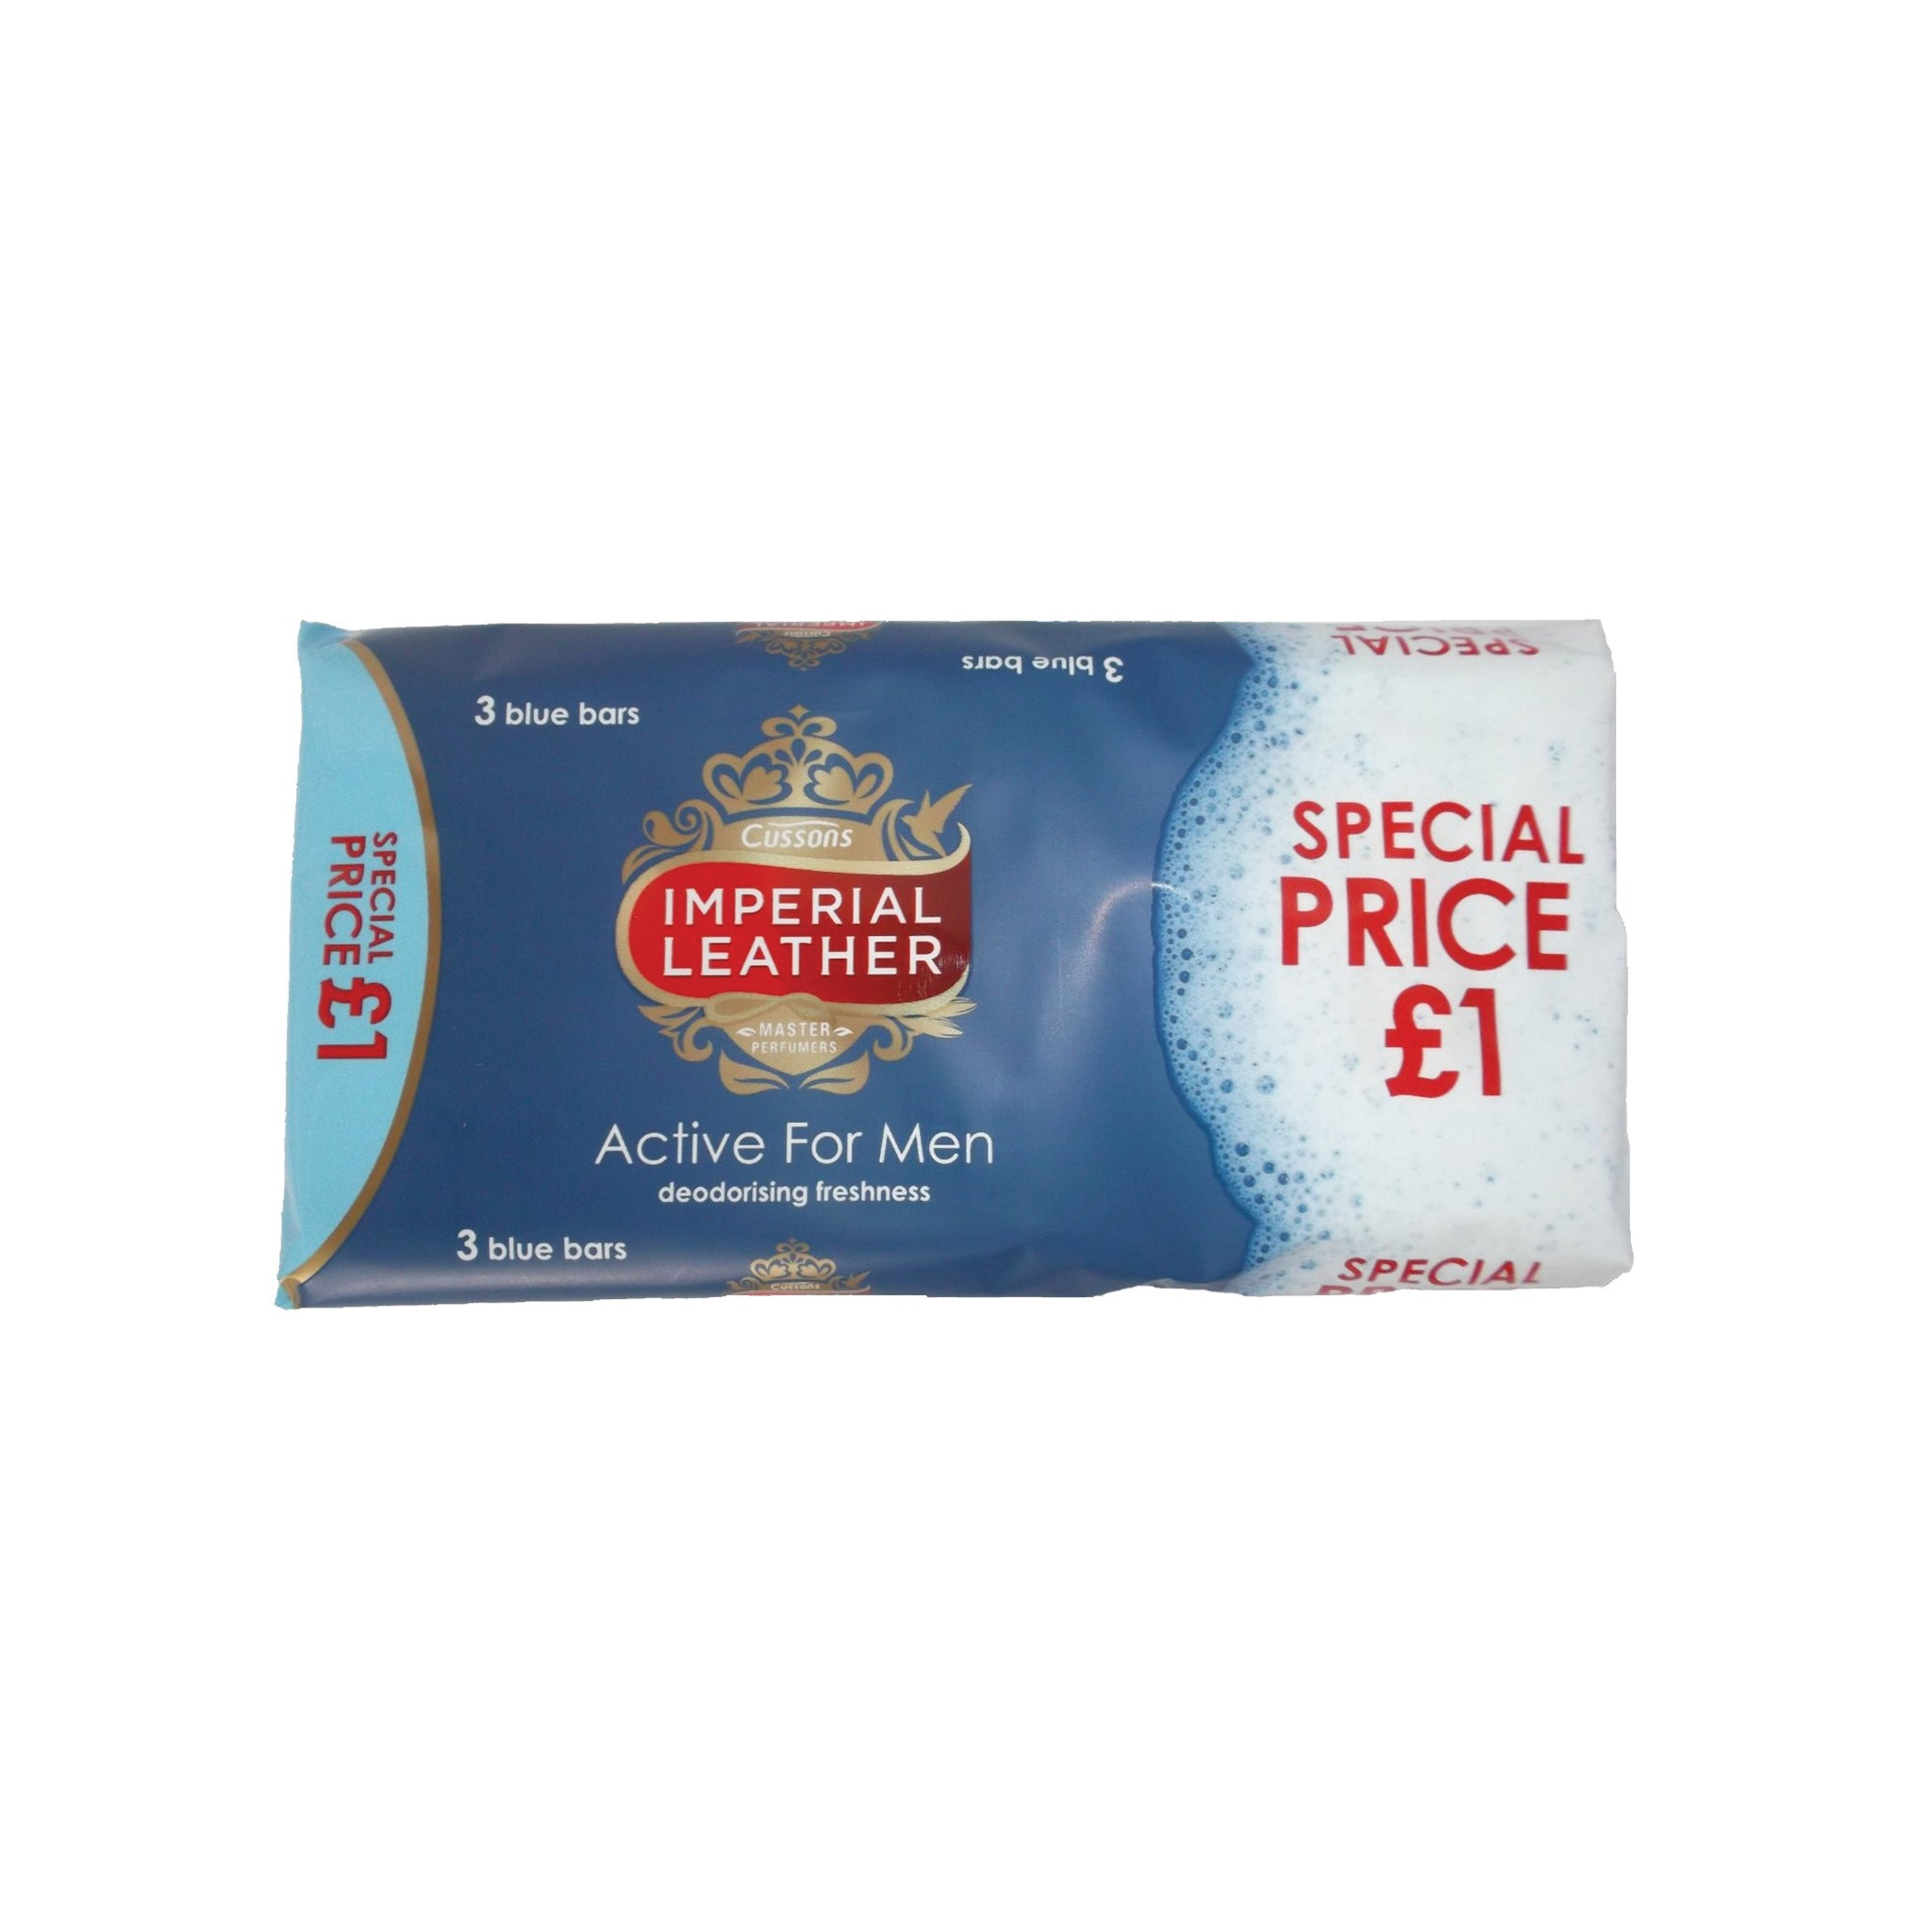 IMPERIAL LEATHER SOAP 3 BARS